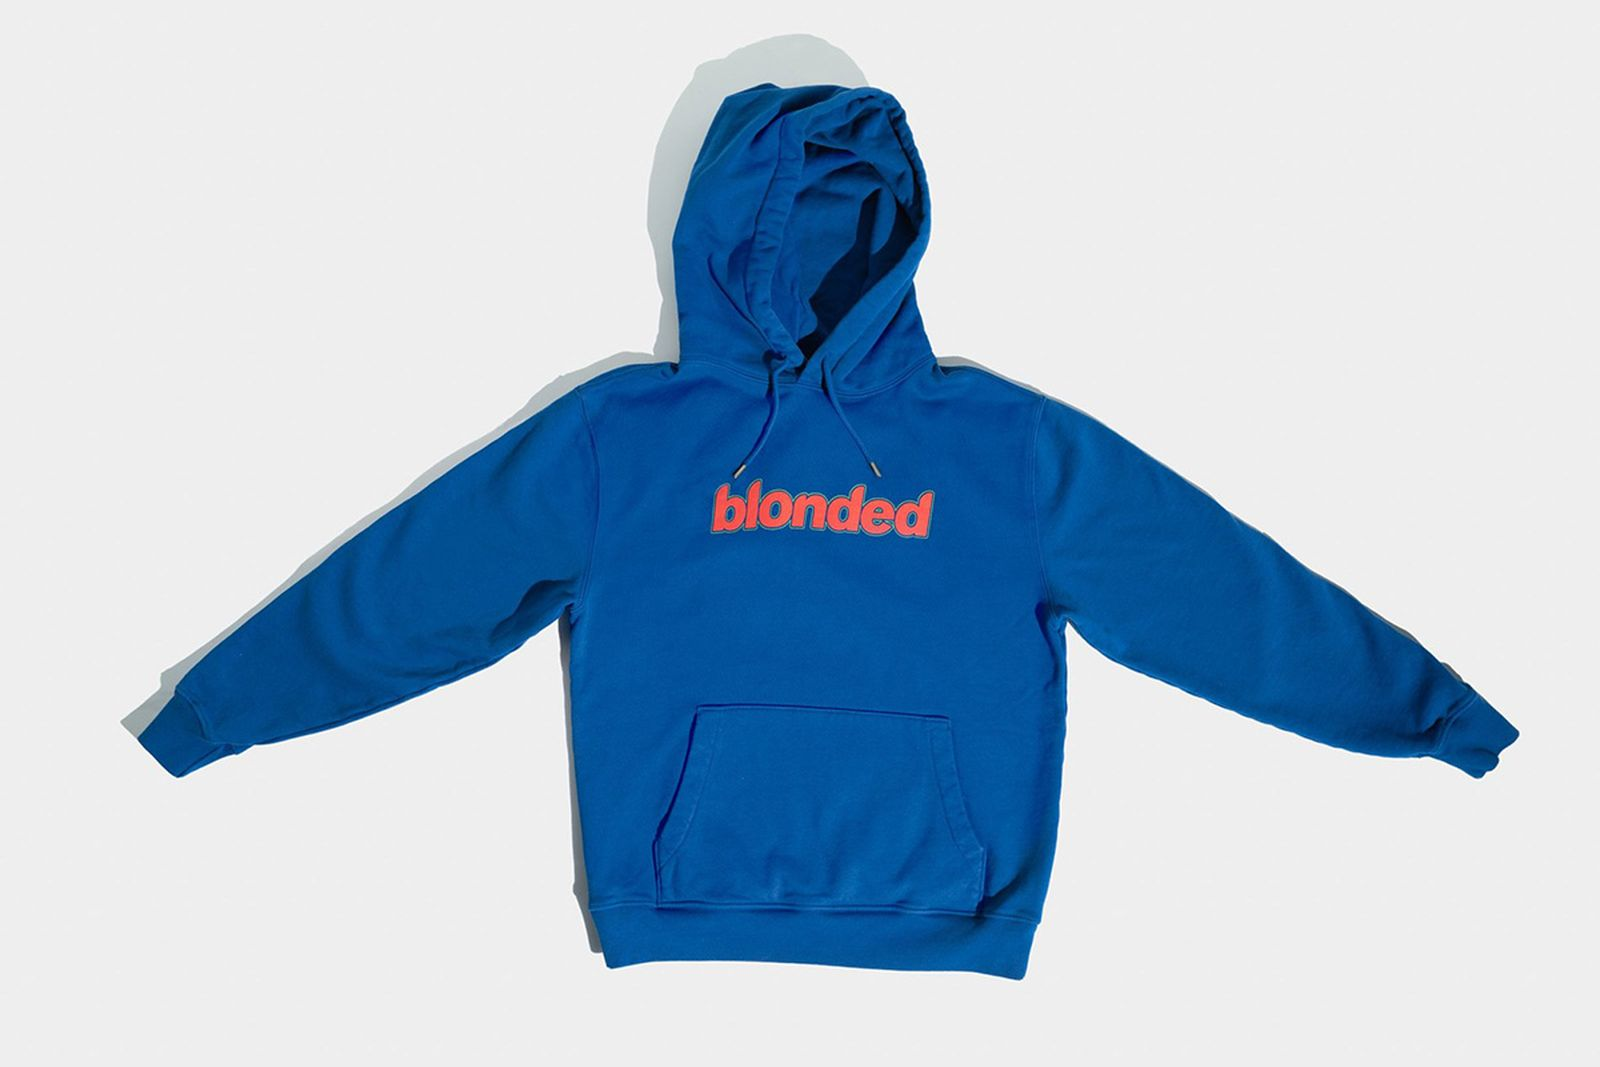 frank-ocean-new-merch-08